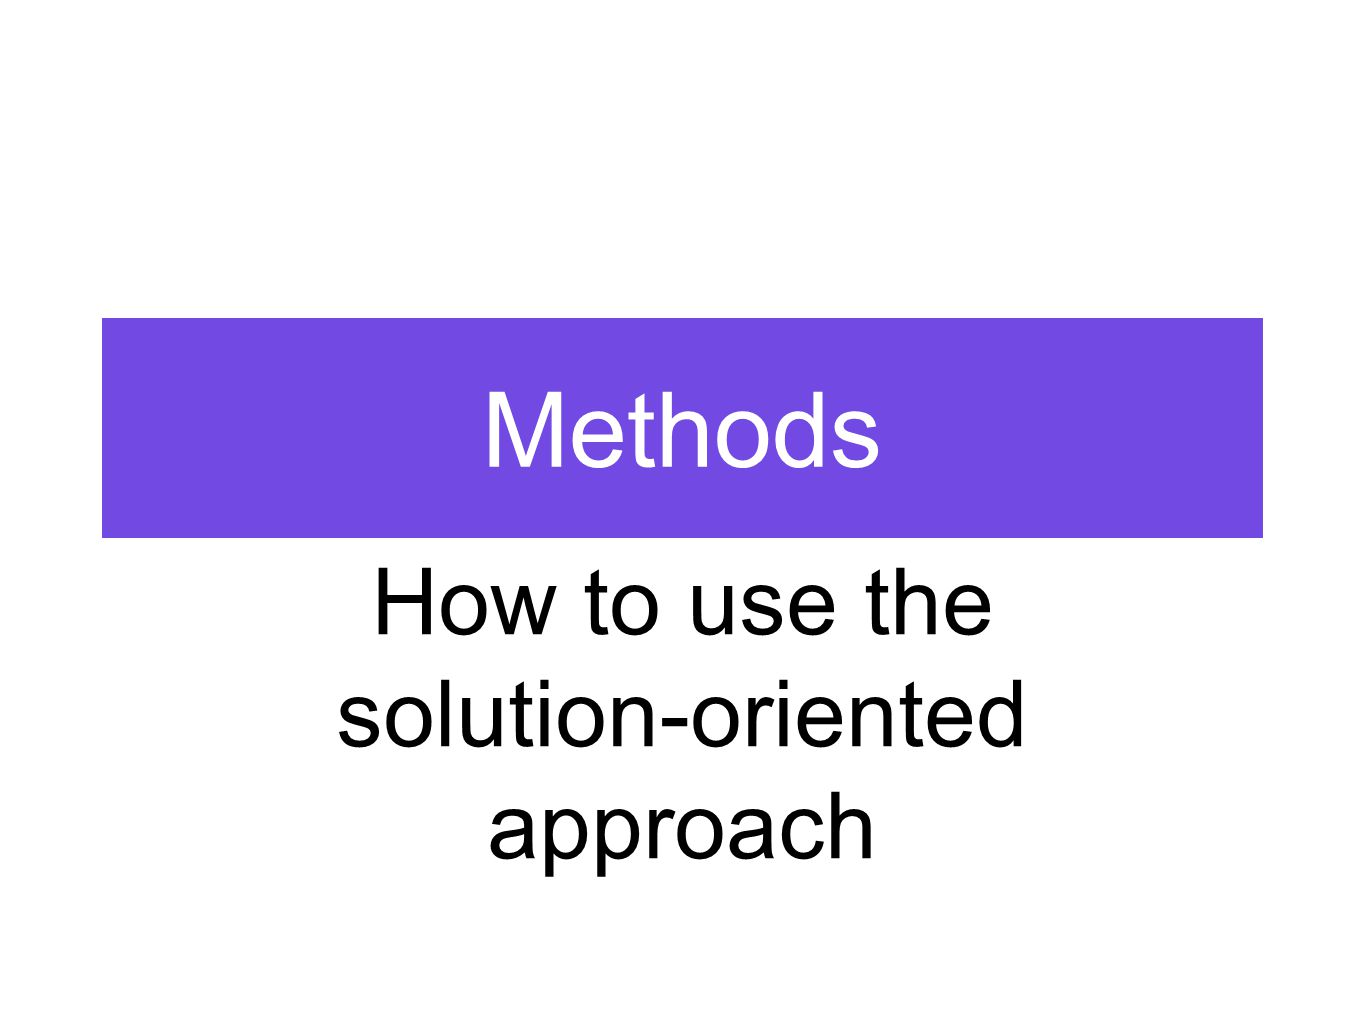 Methods How to use the solution-oriented approach